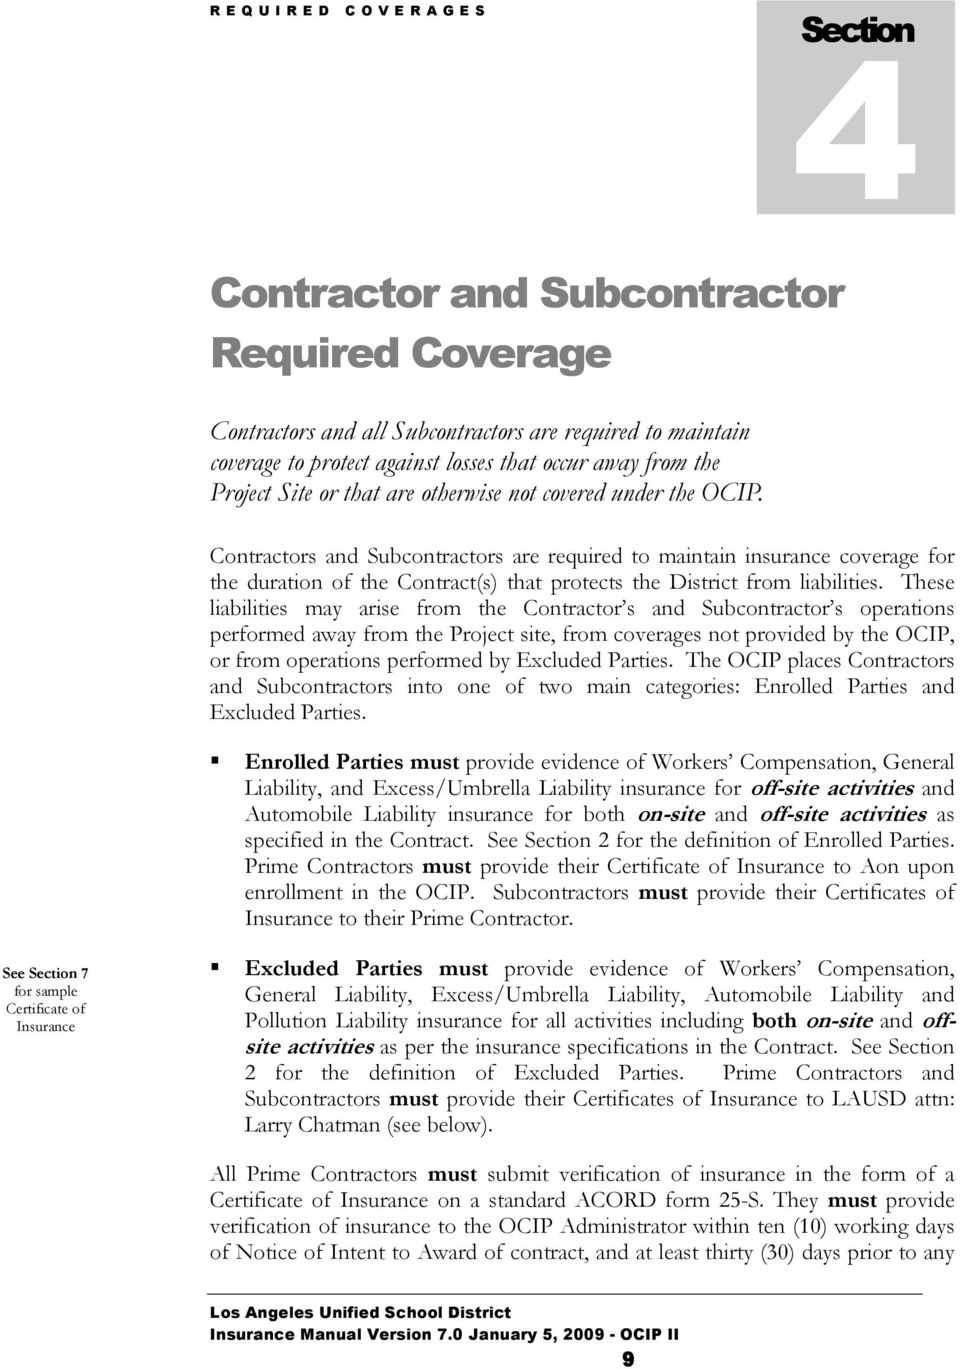 Contractors and Subcontractors are required to maintain insurance coverage for the duration of the Contract(s) that protects the District from liabilities.